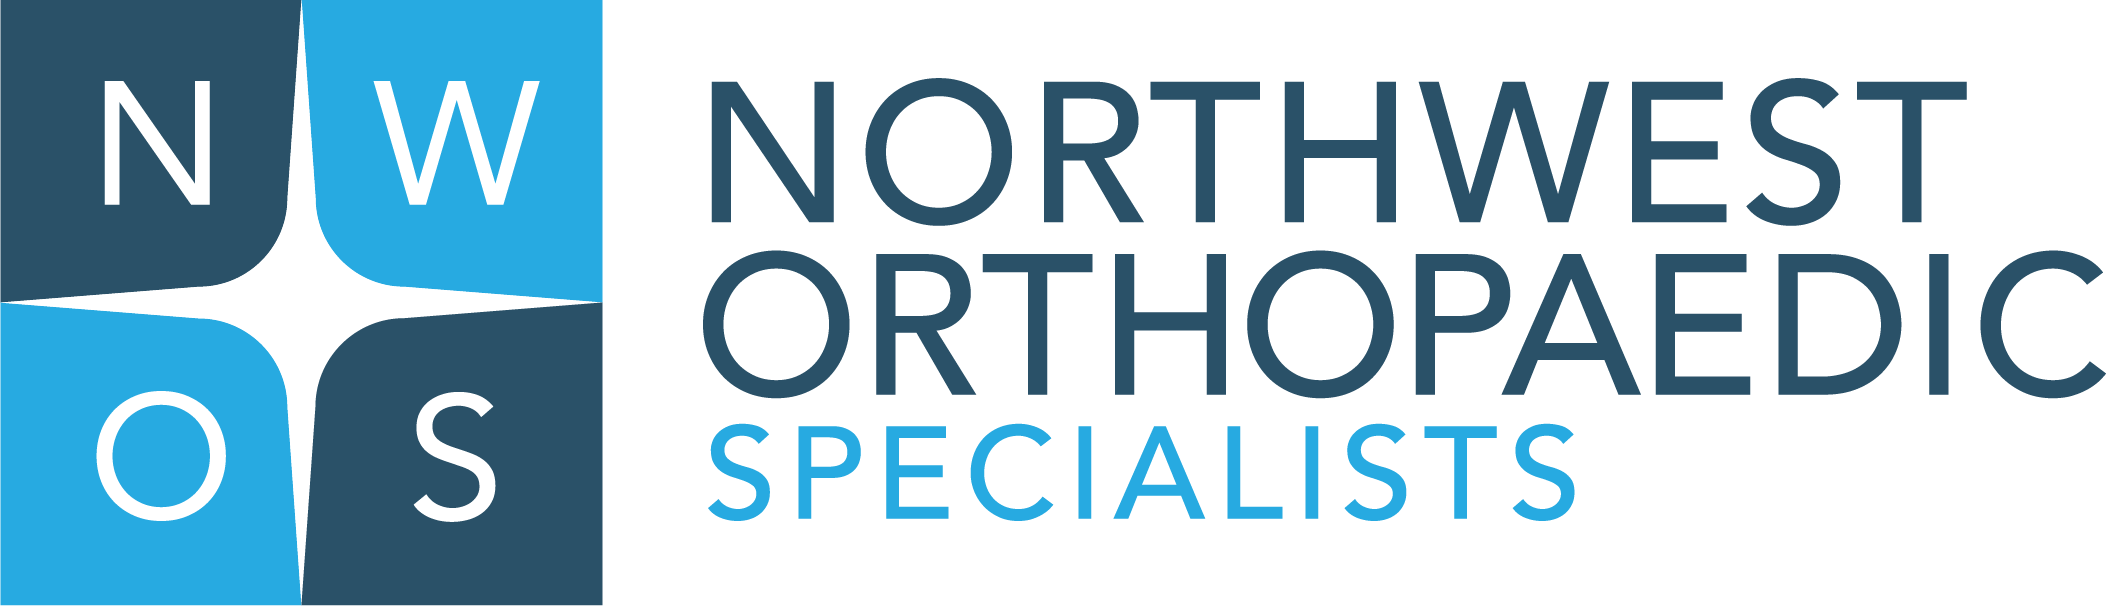 Northwest Orthopaedic Specialists, Spokane, WA